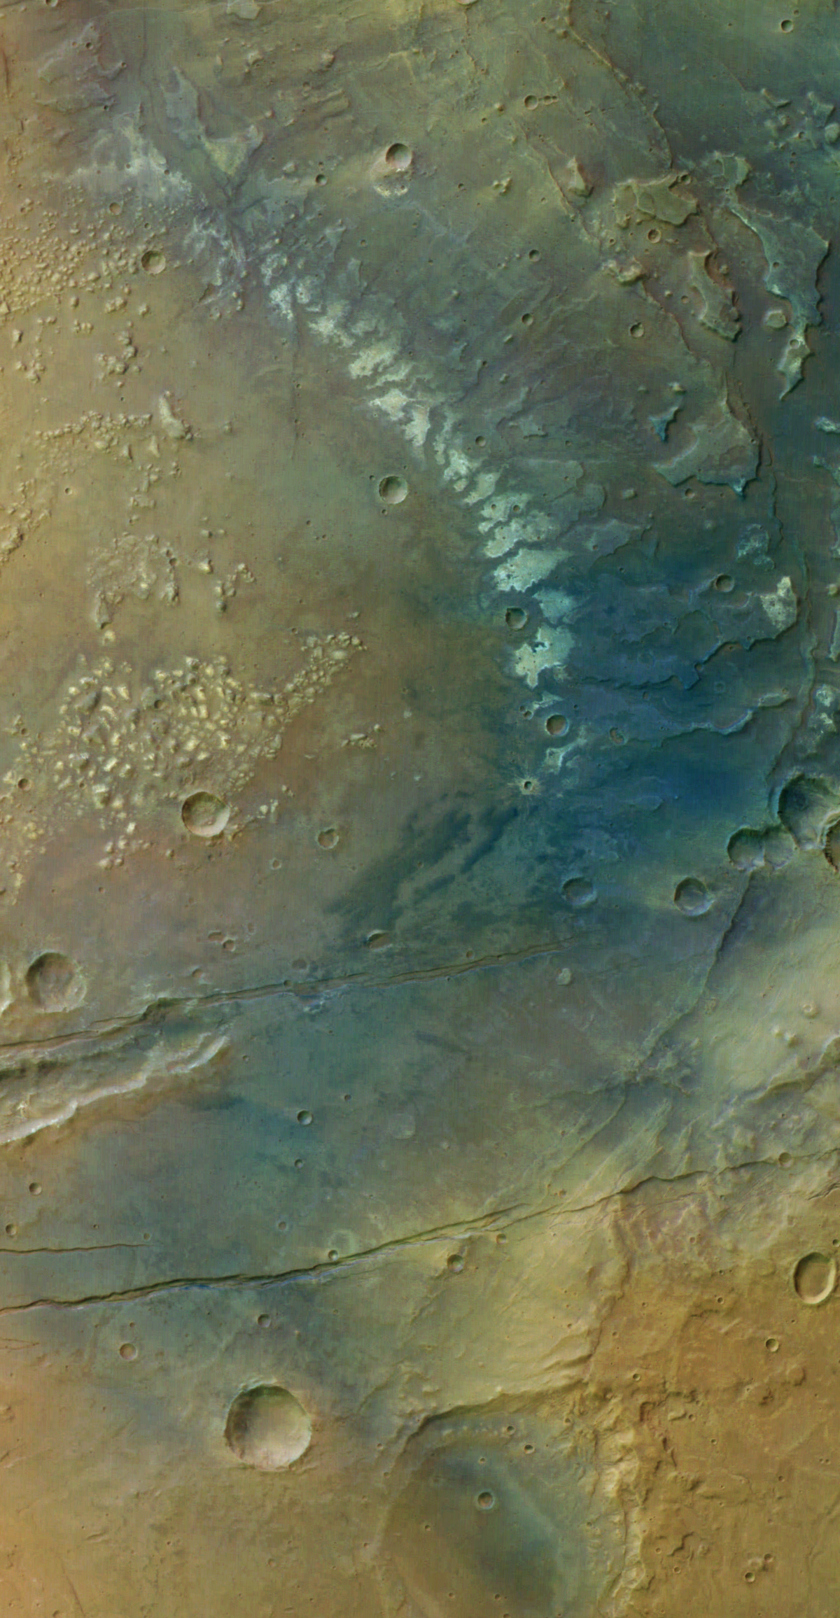 The Sirenum Fossae Region of Mars